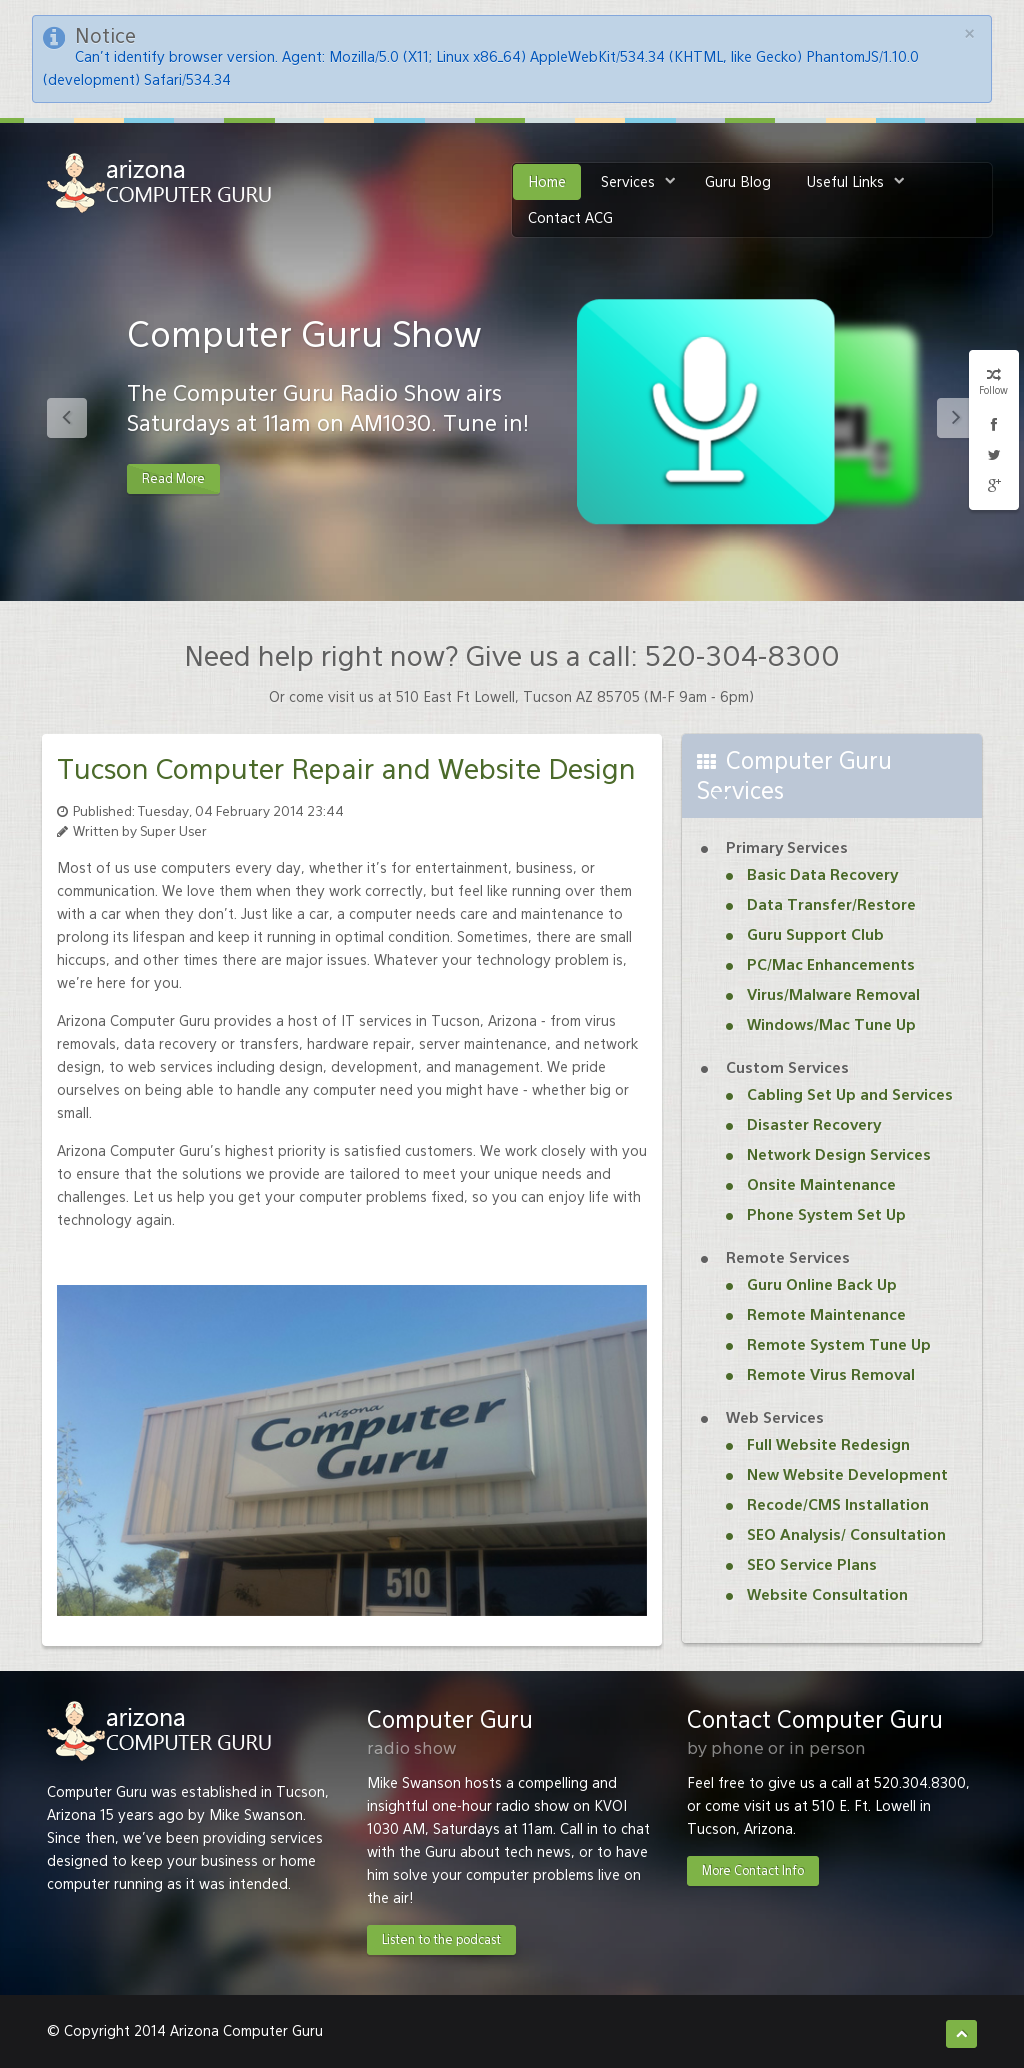 AZ Computer Guru Competitors, Revenue and Employees - Owler Company